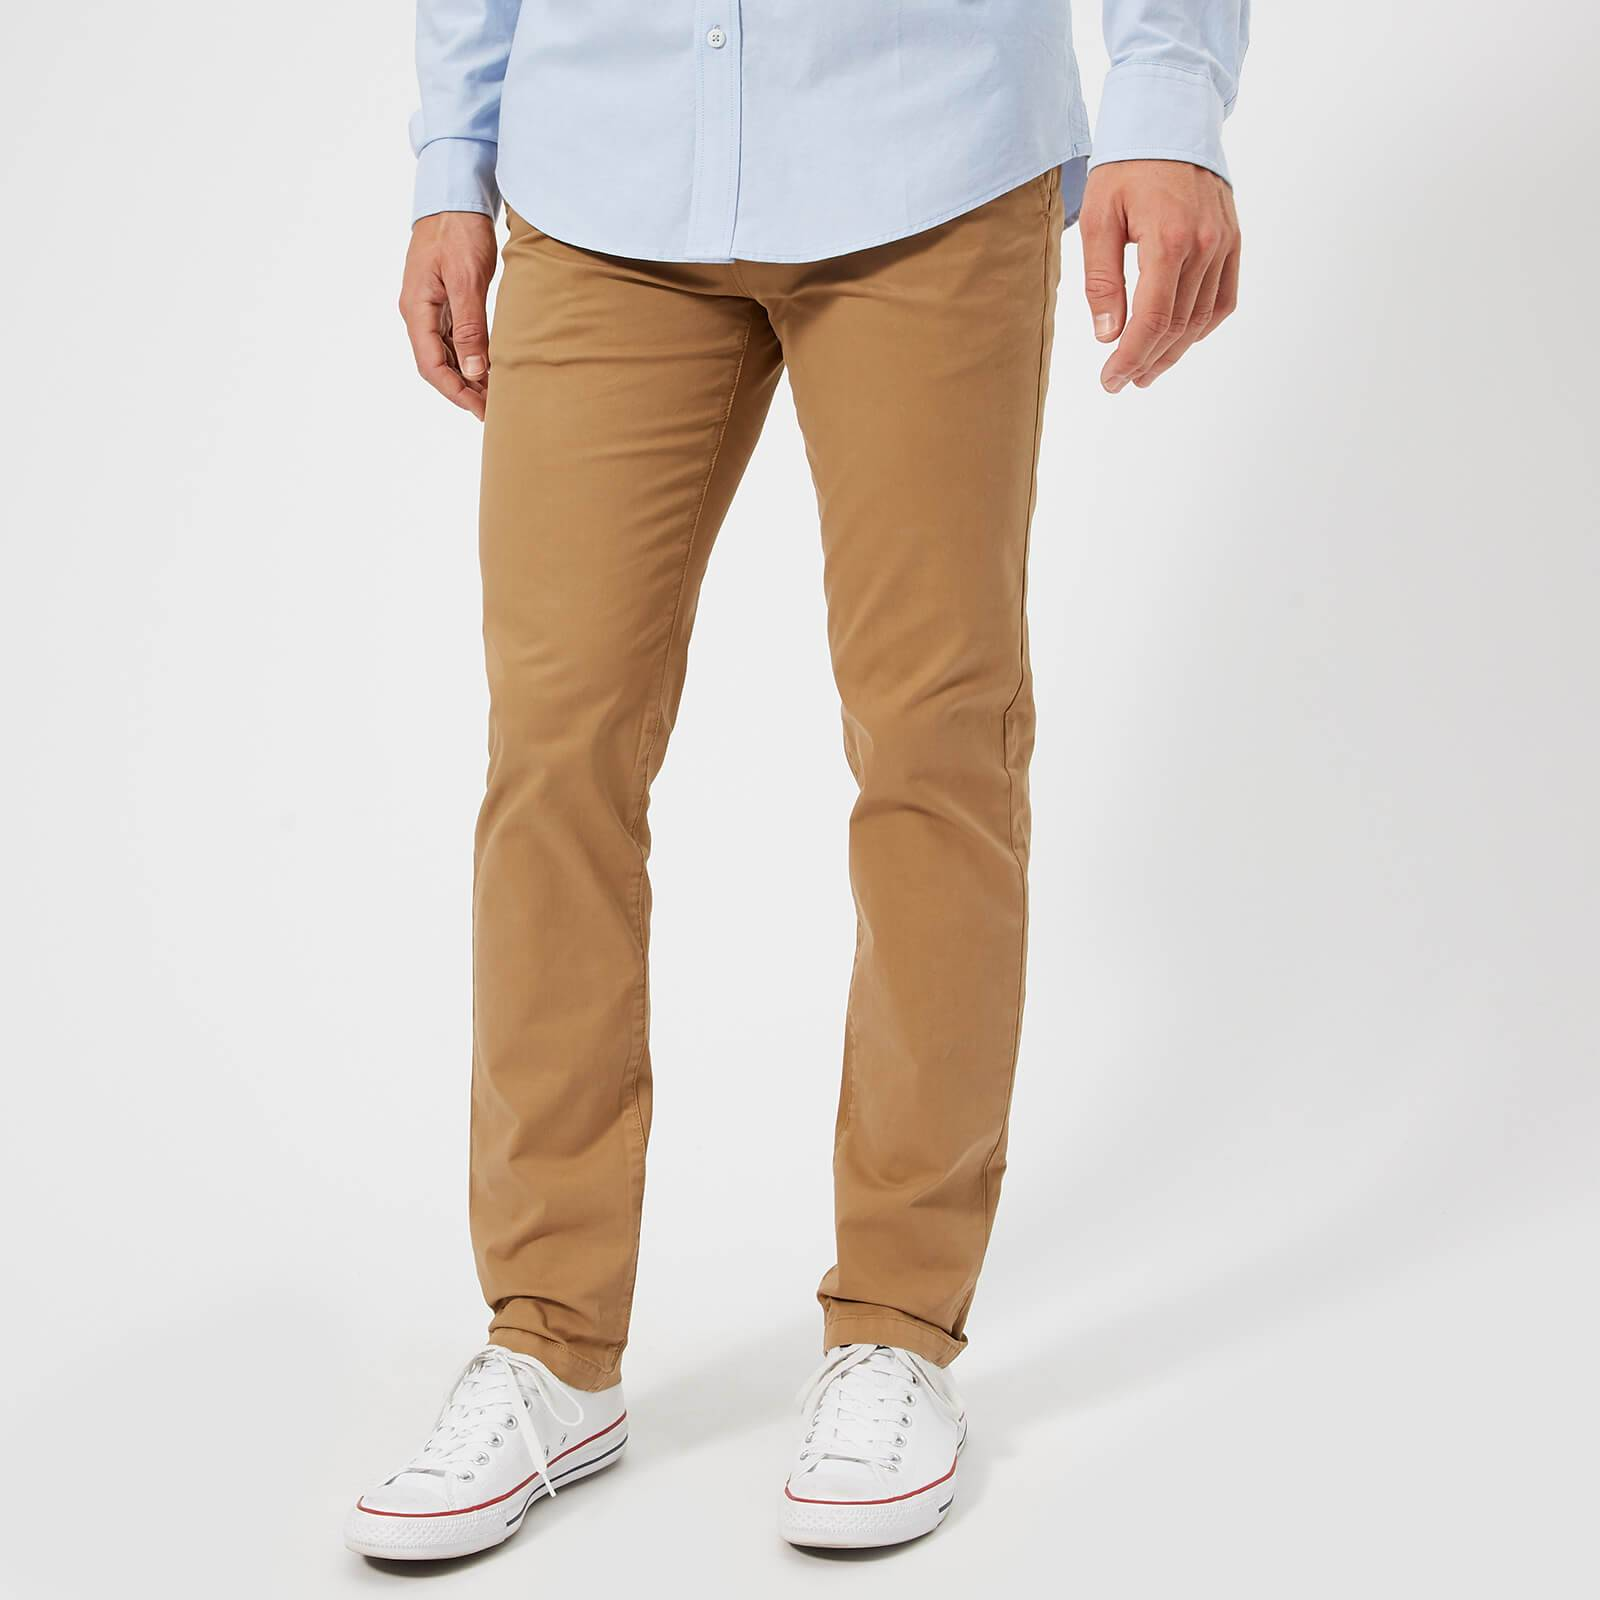 Joules Men's The Laundered Chinos - Corn - W30/L32 - Stone